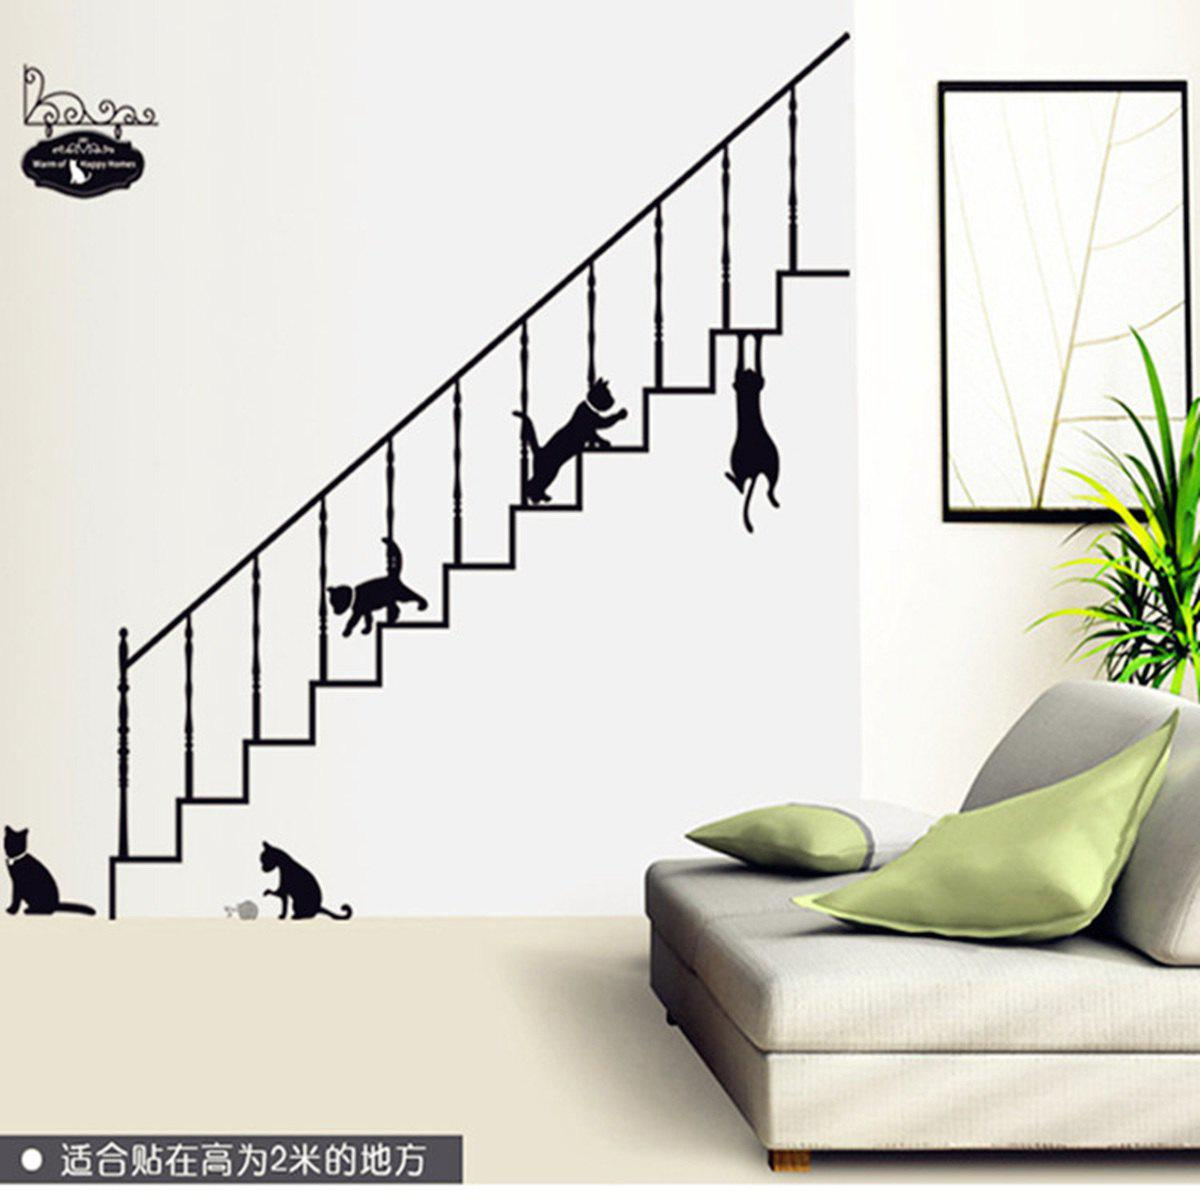 Stairs and Kitty Style Wall Sticker Home Appliances Decor Wall Decals symmetrical pattern stairs sticker 6pcs